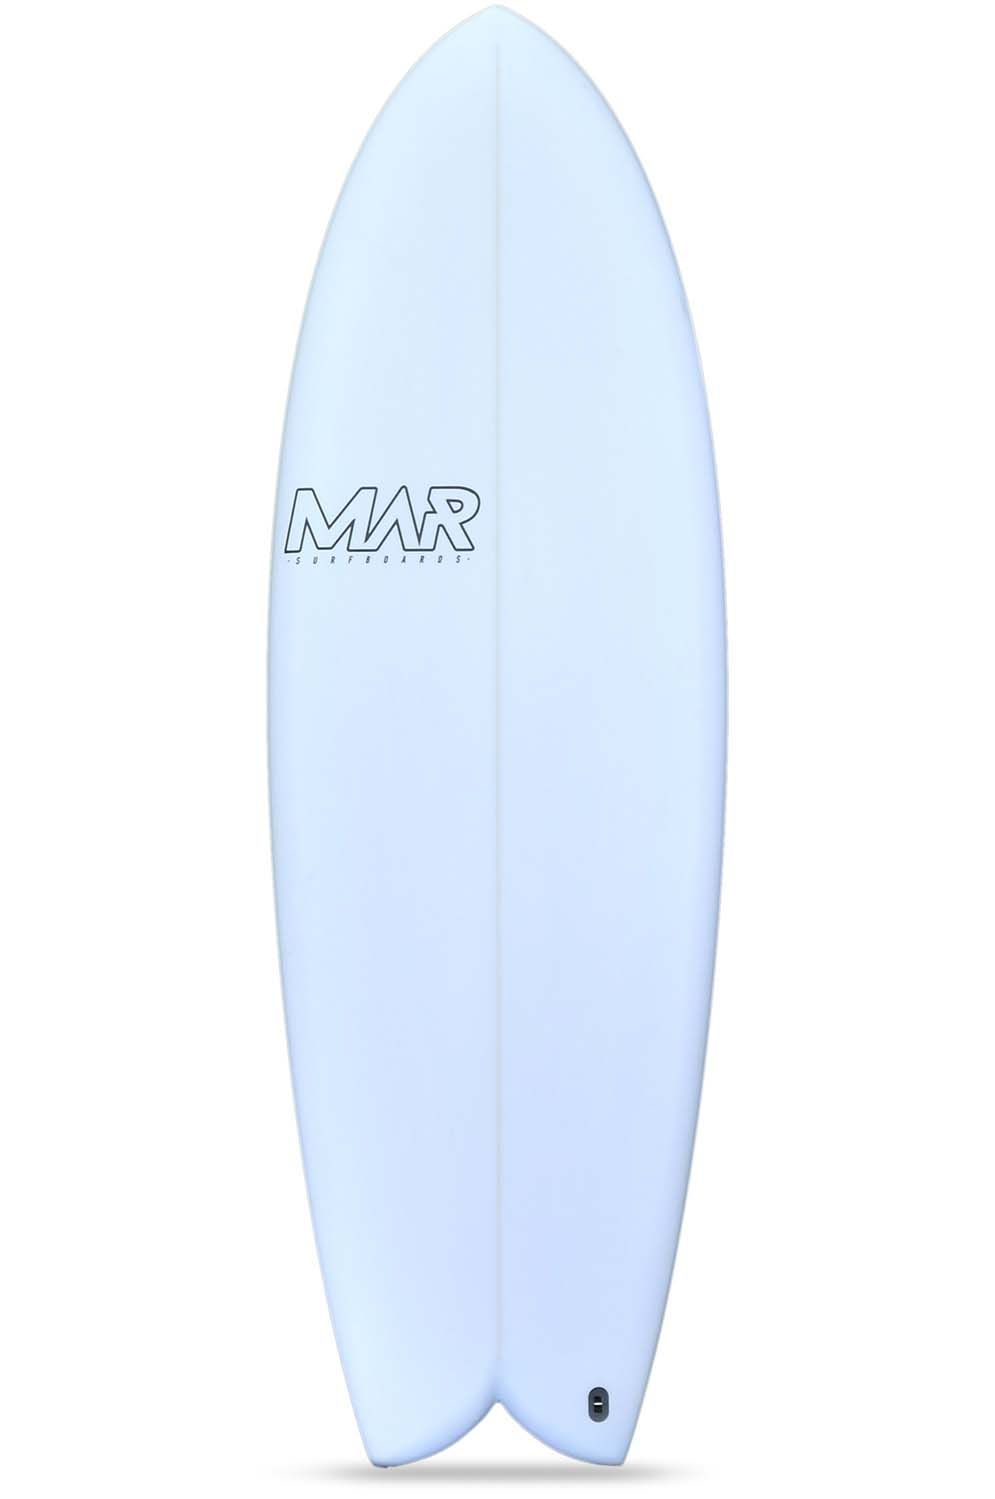 Prancha Surf Mar THE 2 Swallow Tail - Color